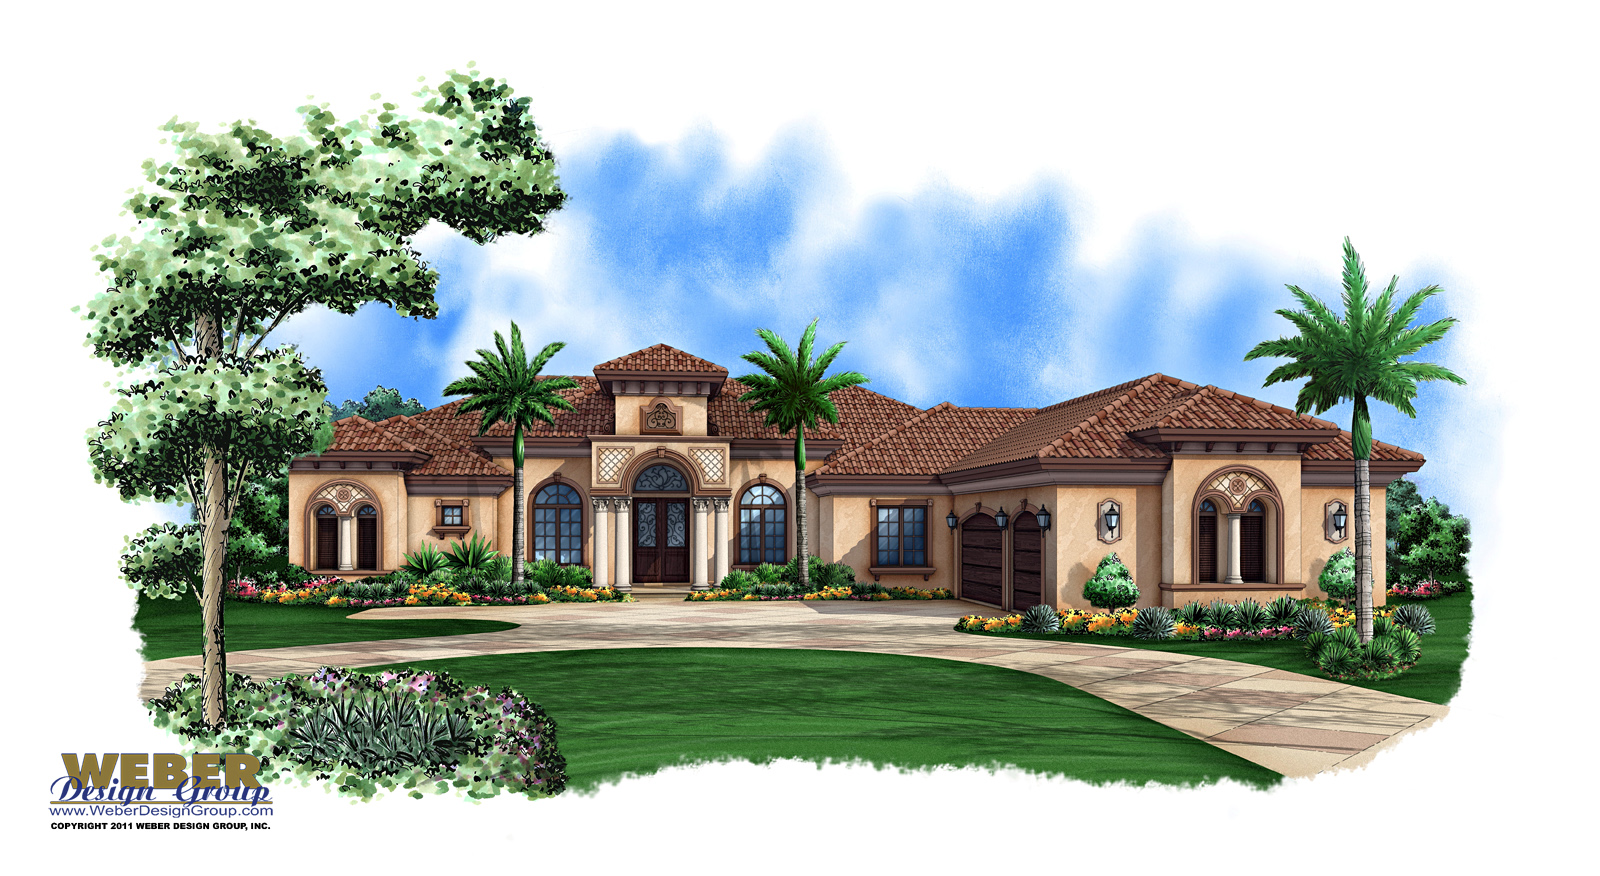 Mediterranean house design provence home plan weber design group weber design group - Mediterranean house floor plans paint ...